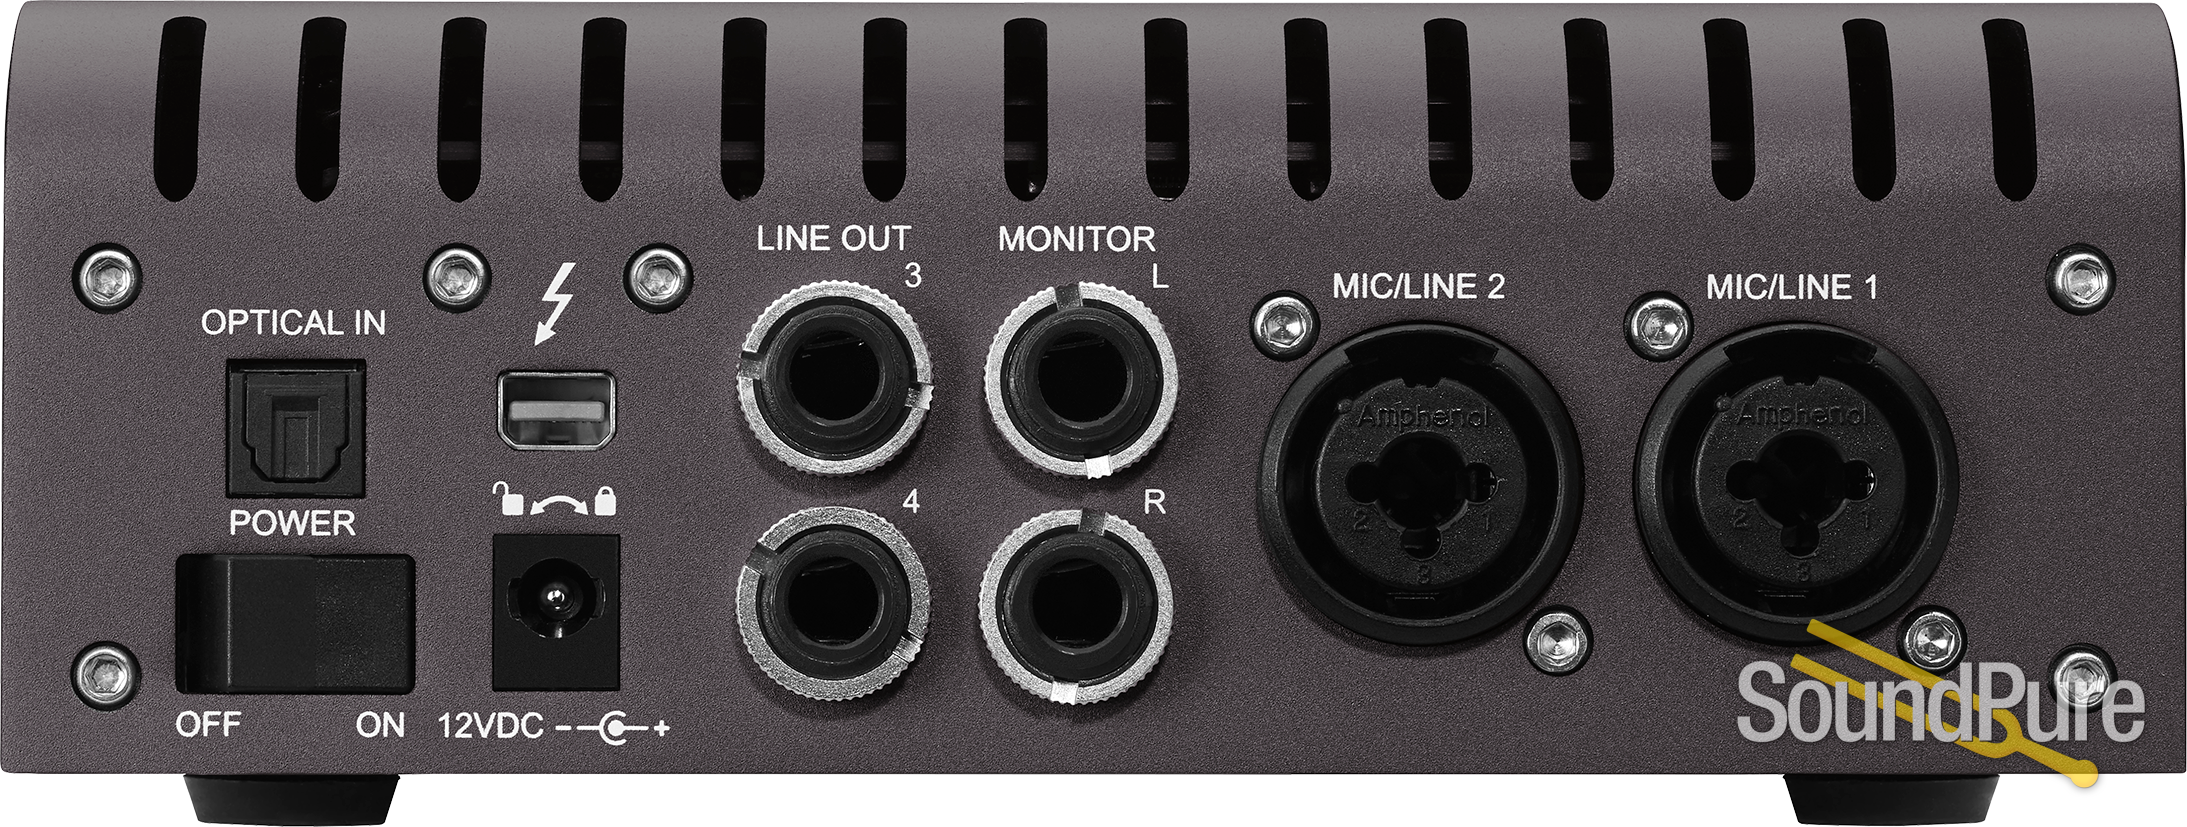 Apollo Twin Mkii W Quad Dsp Processing Kendrick Amp Schematics With Higher Fidelity Next Generation Converters Convenient Monitor Control Options And Both Mac Pc Compatibility The Already Powerful Just